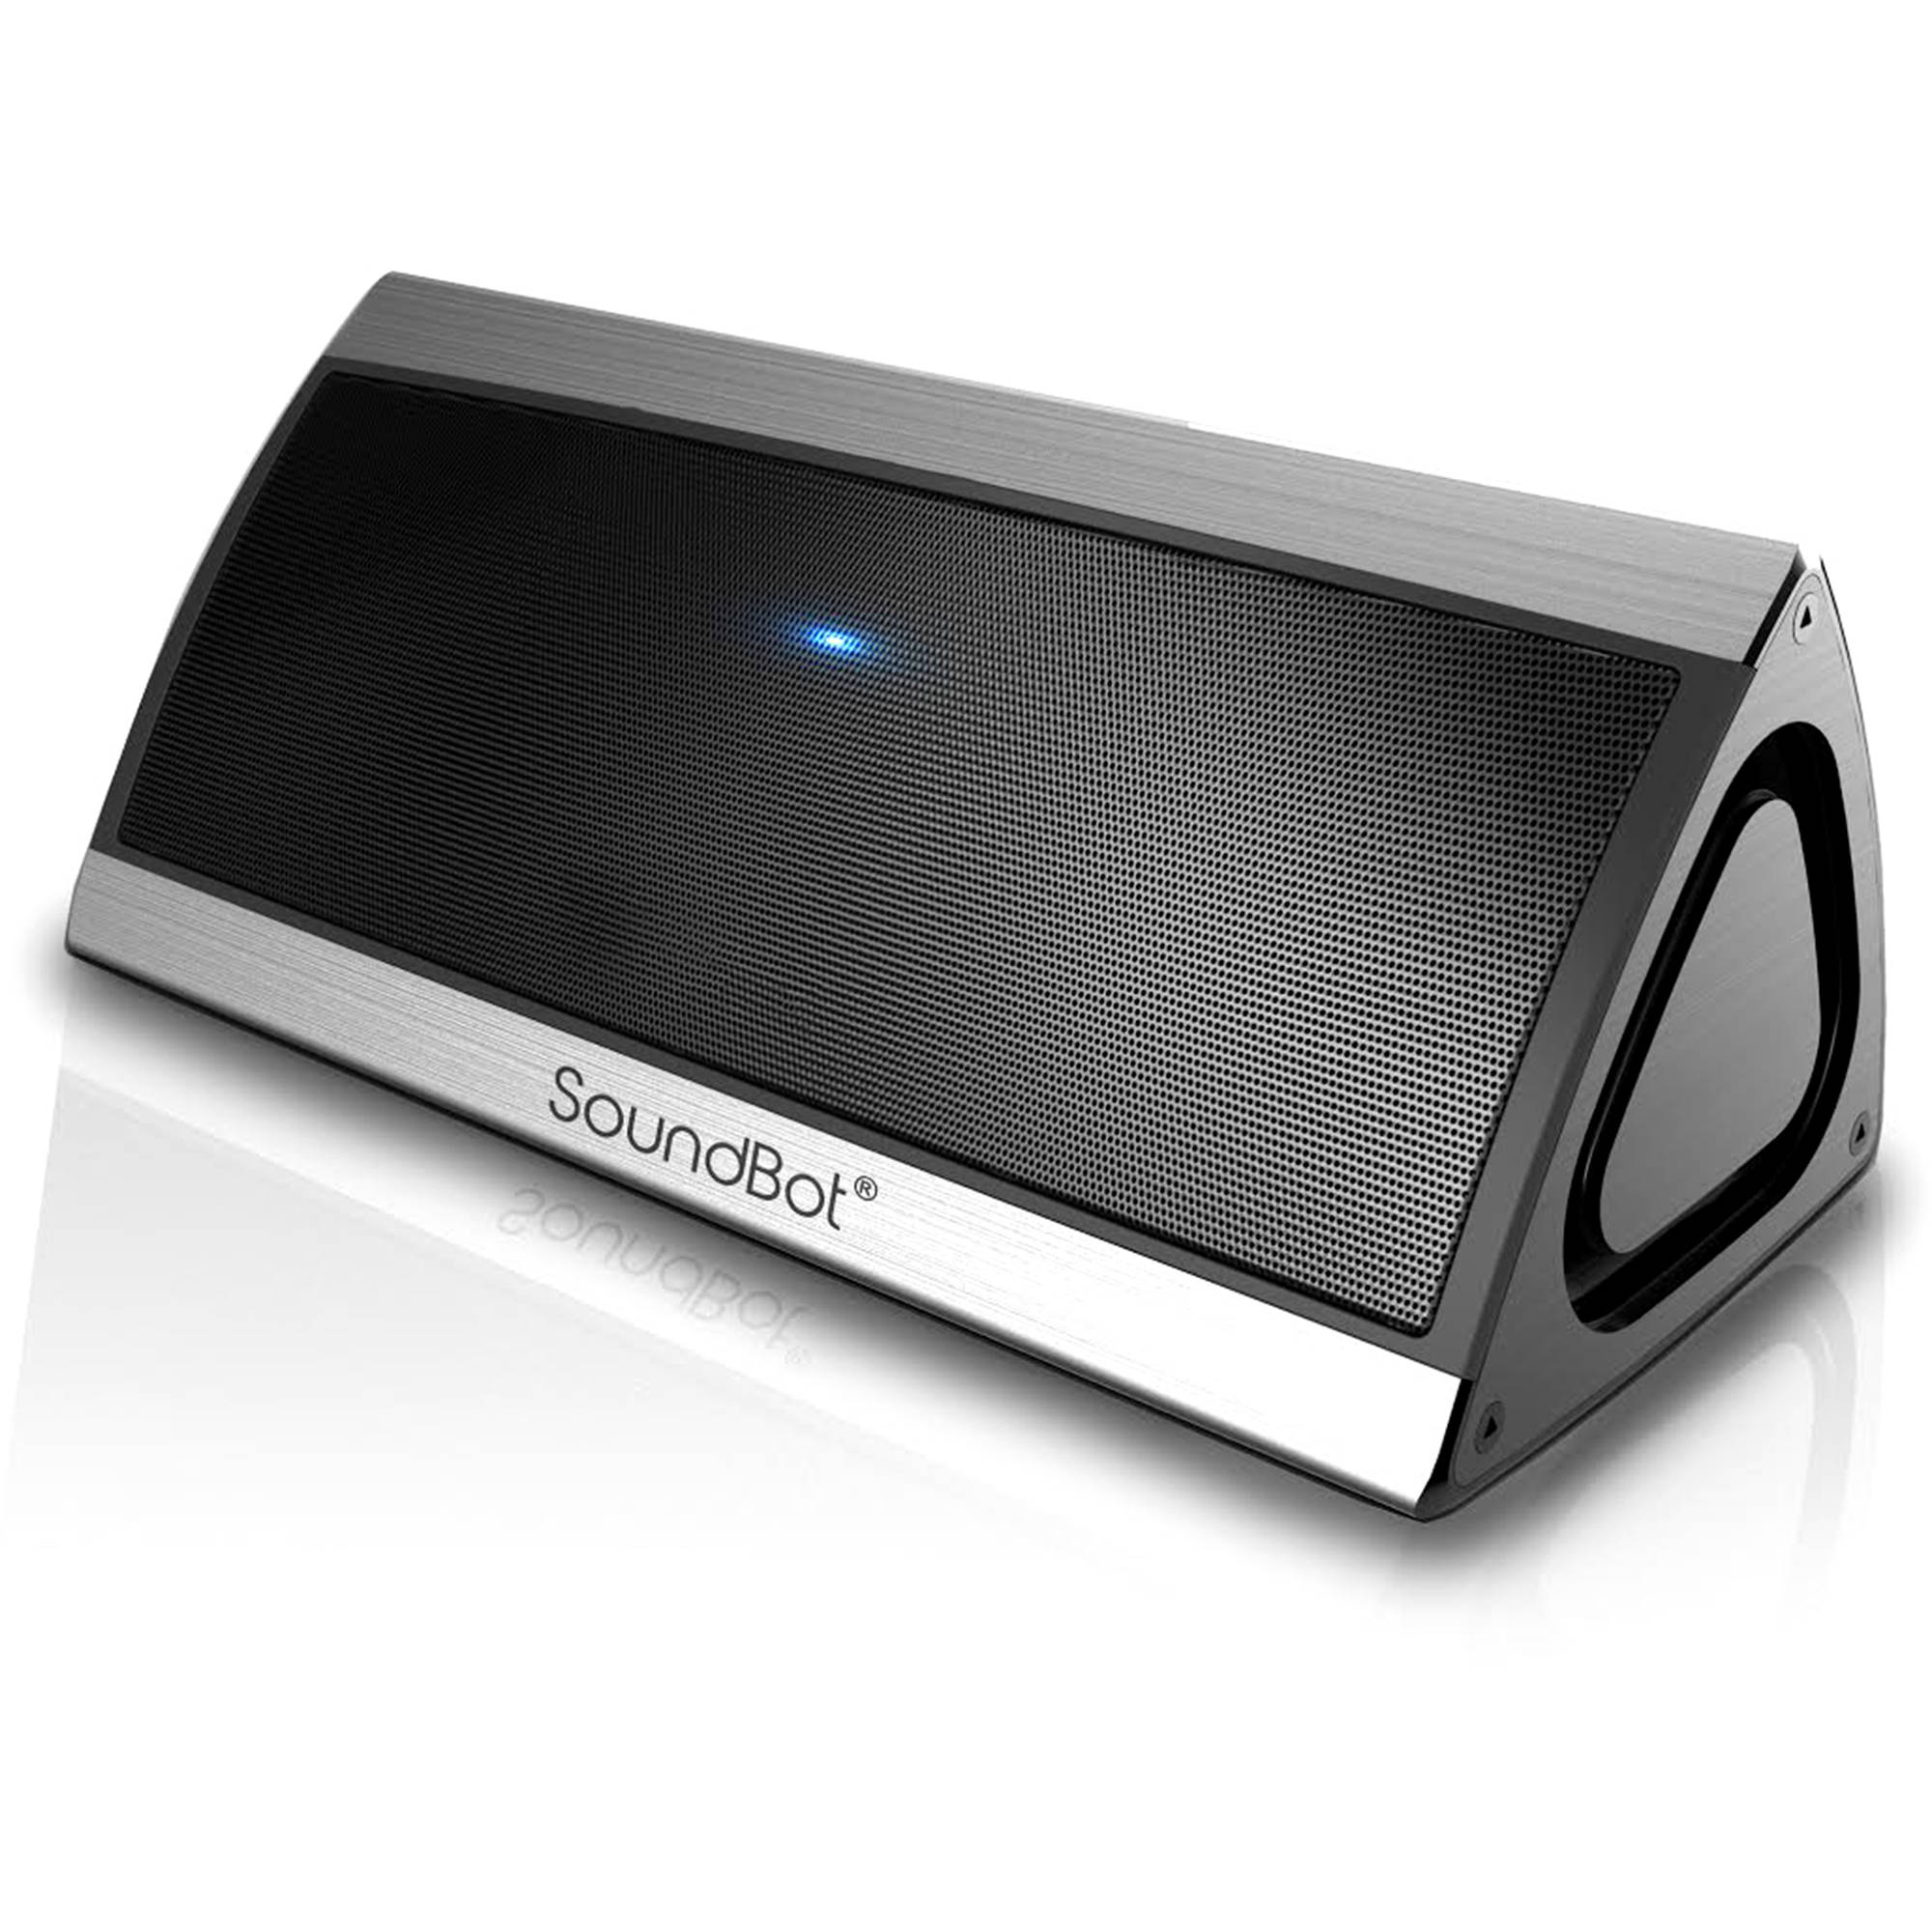 SoundBot SB520 3D HD Bluetooth 4.0 Wireless Speaker with Passive Sub Woofer, Built-in Mic and 3.5mm Audio Port, Silver